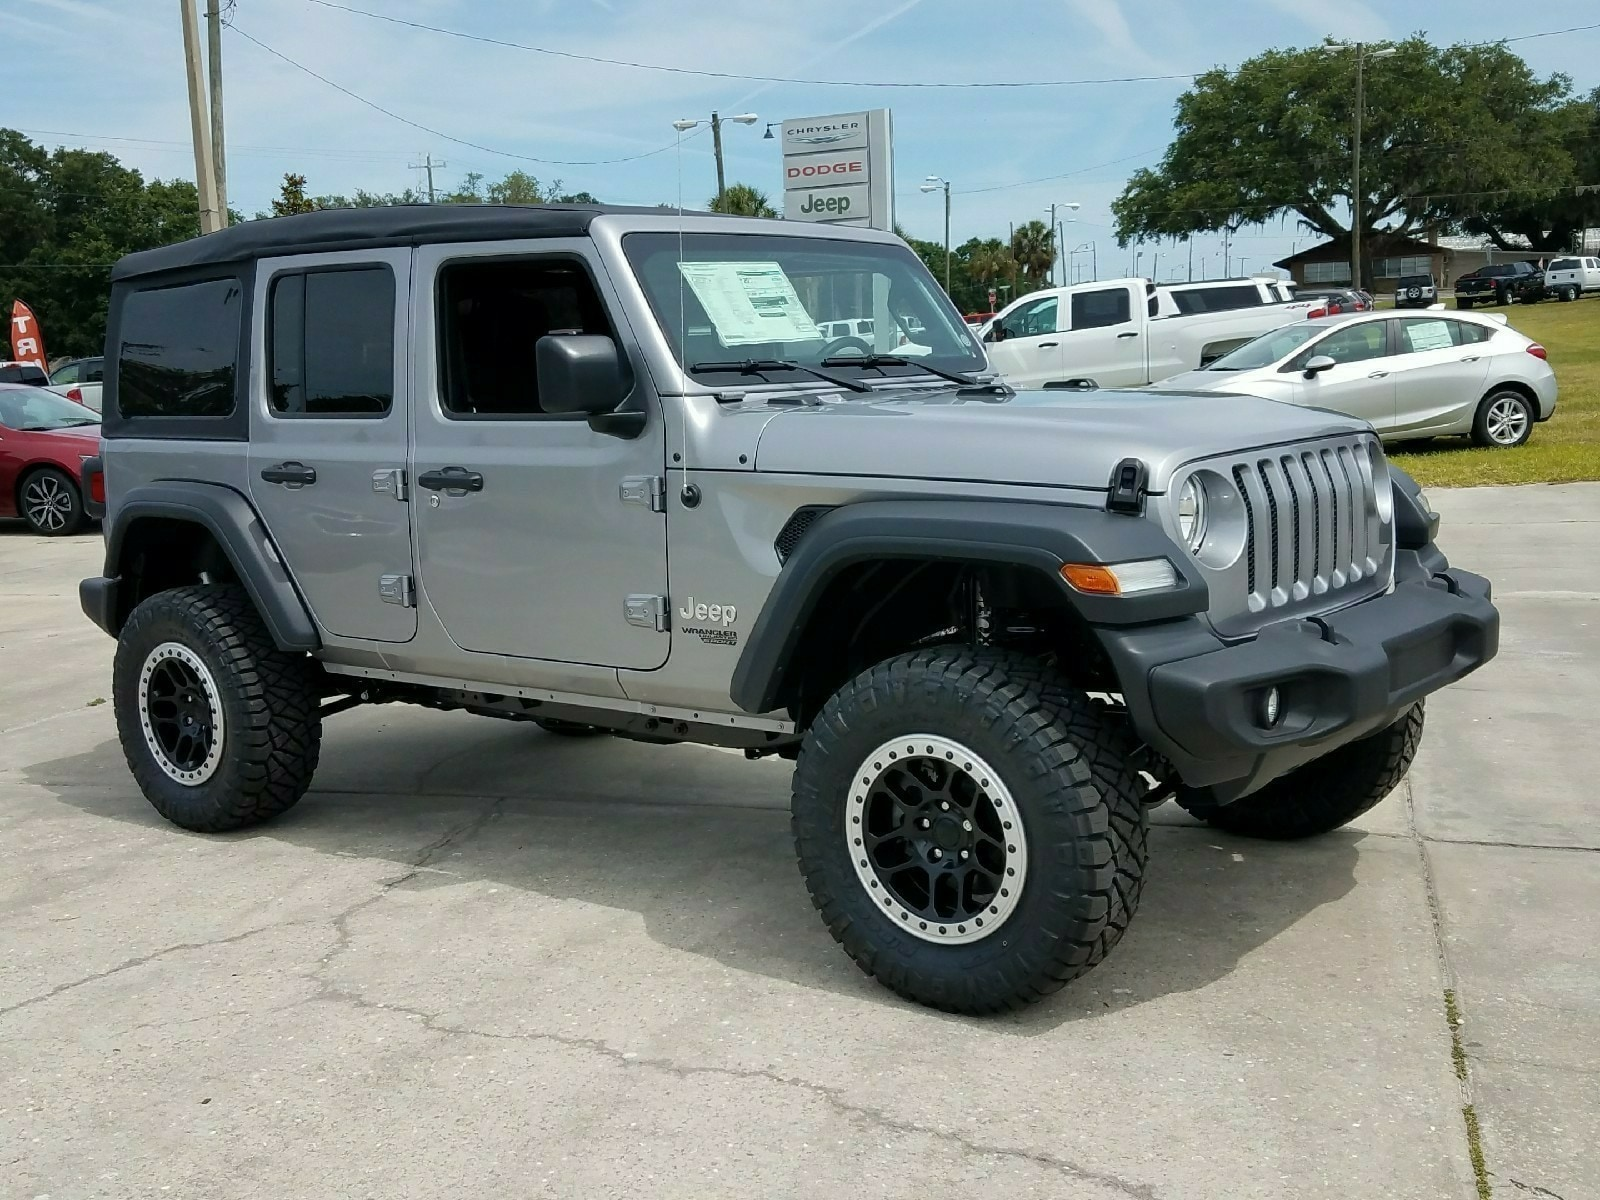 Alan Jay Chrysler Dodge Ram Jeep of Wauchula